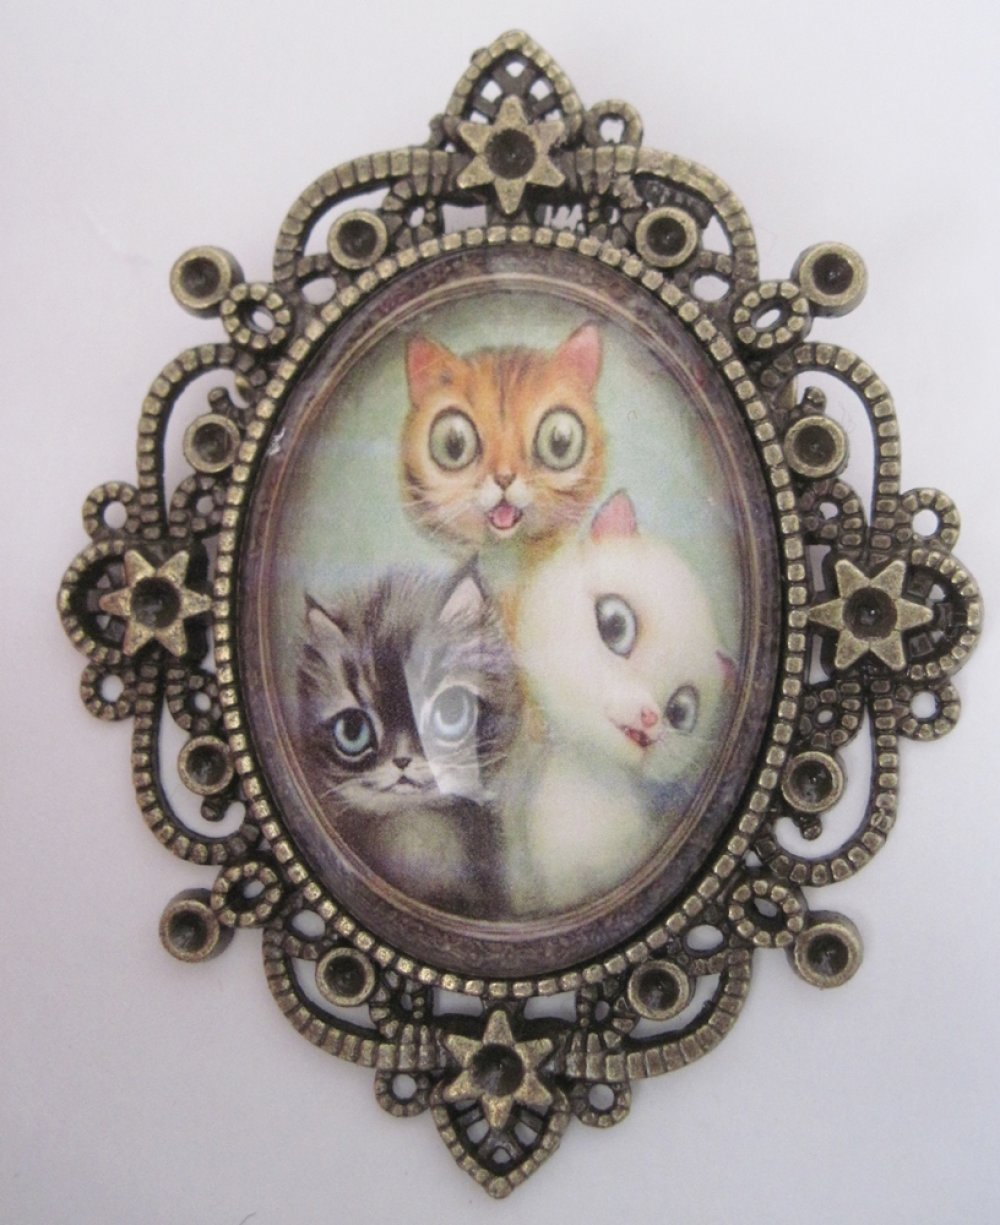 Broche verre 3 chatons chats gothique penny dreadful fantasy cheshire gothic steampunk lacombe illustration kawaii